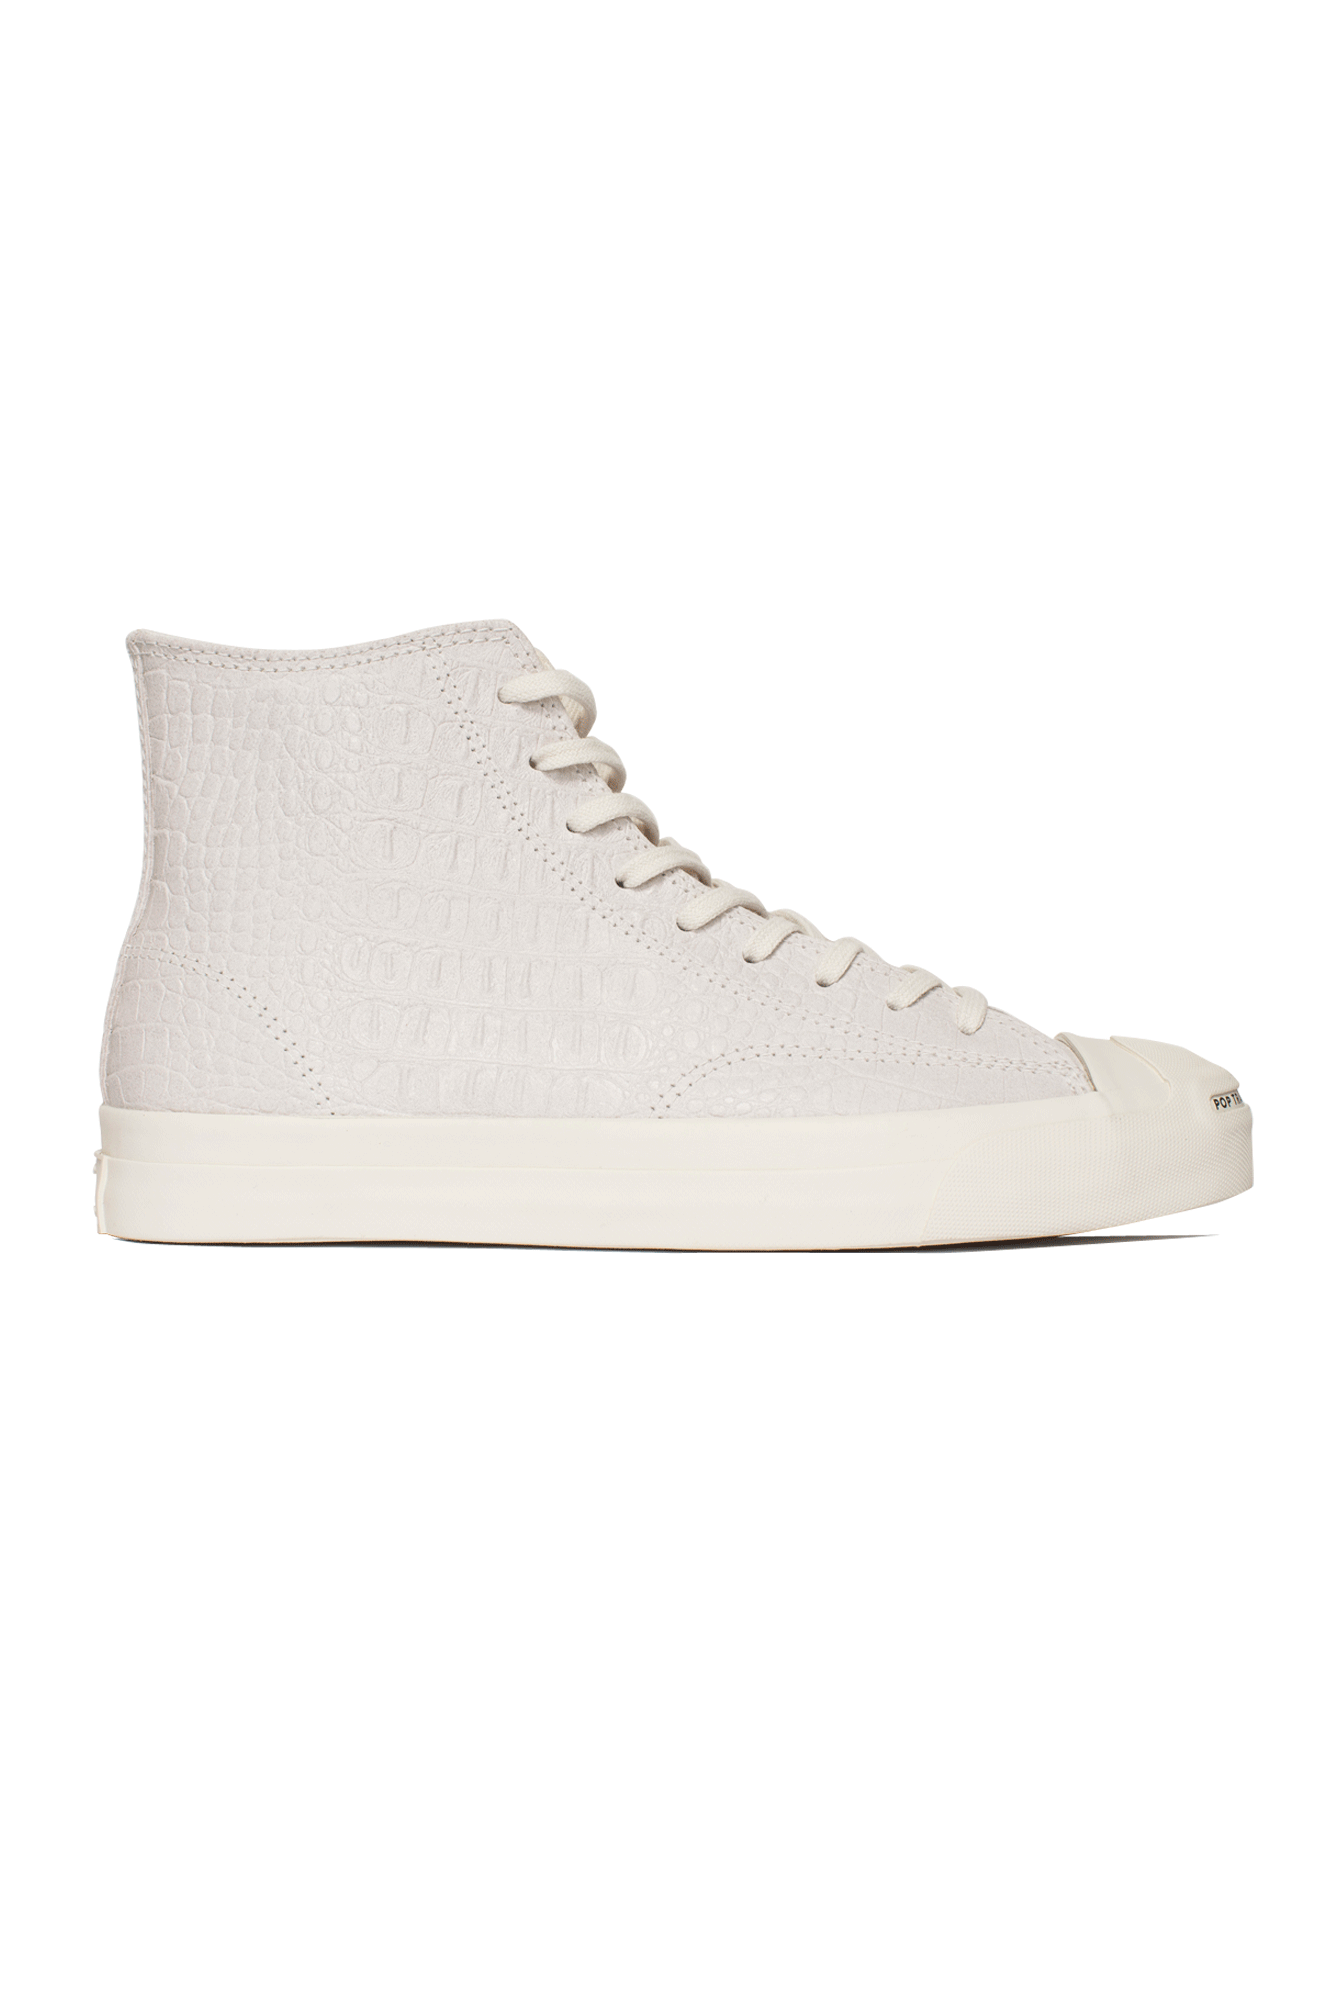 Converse Sneakers Jack Purcell Pro Hi x Pop Trading Co Bianco 170543C#000#EHT#7,5 - One Block Down